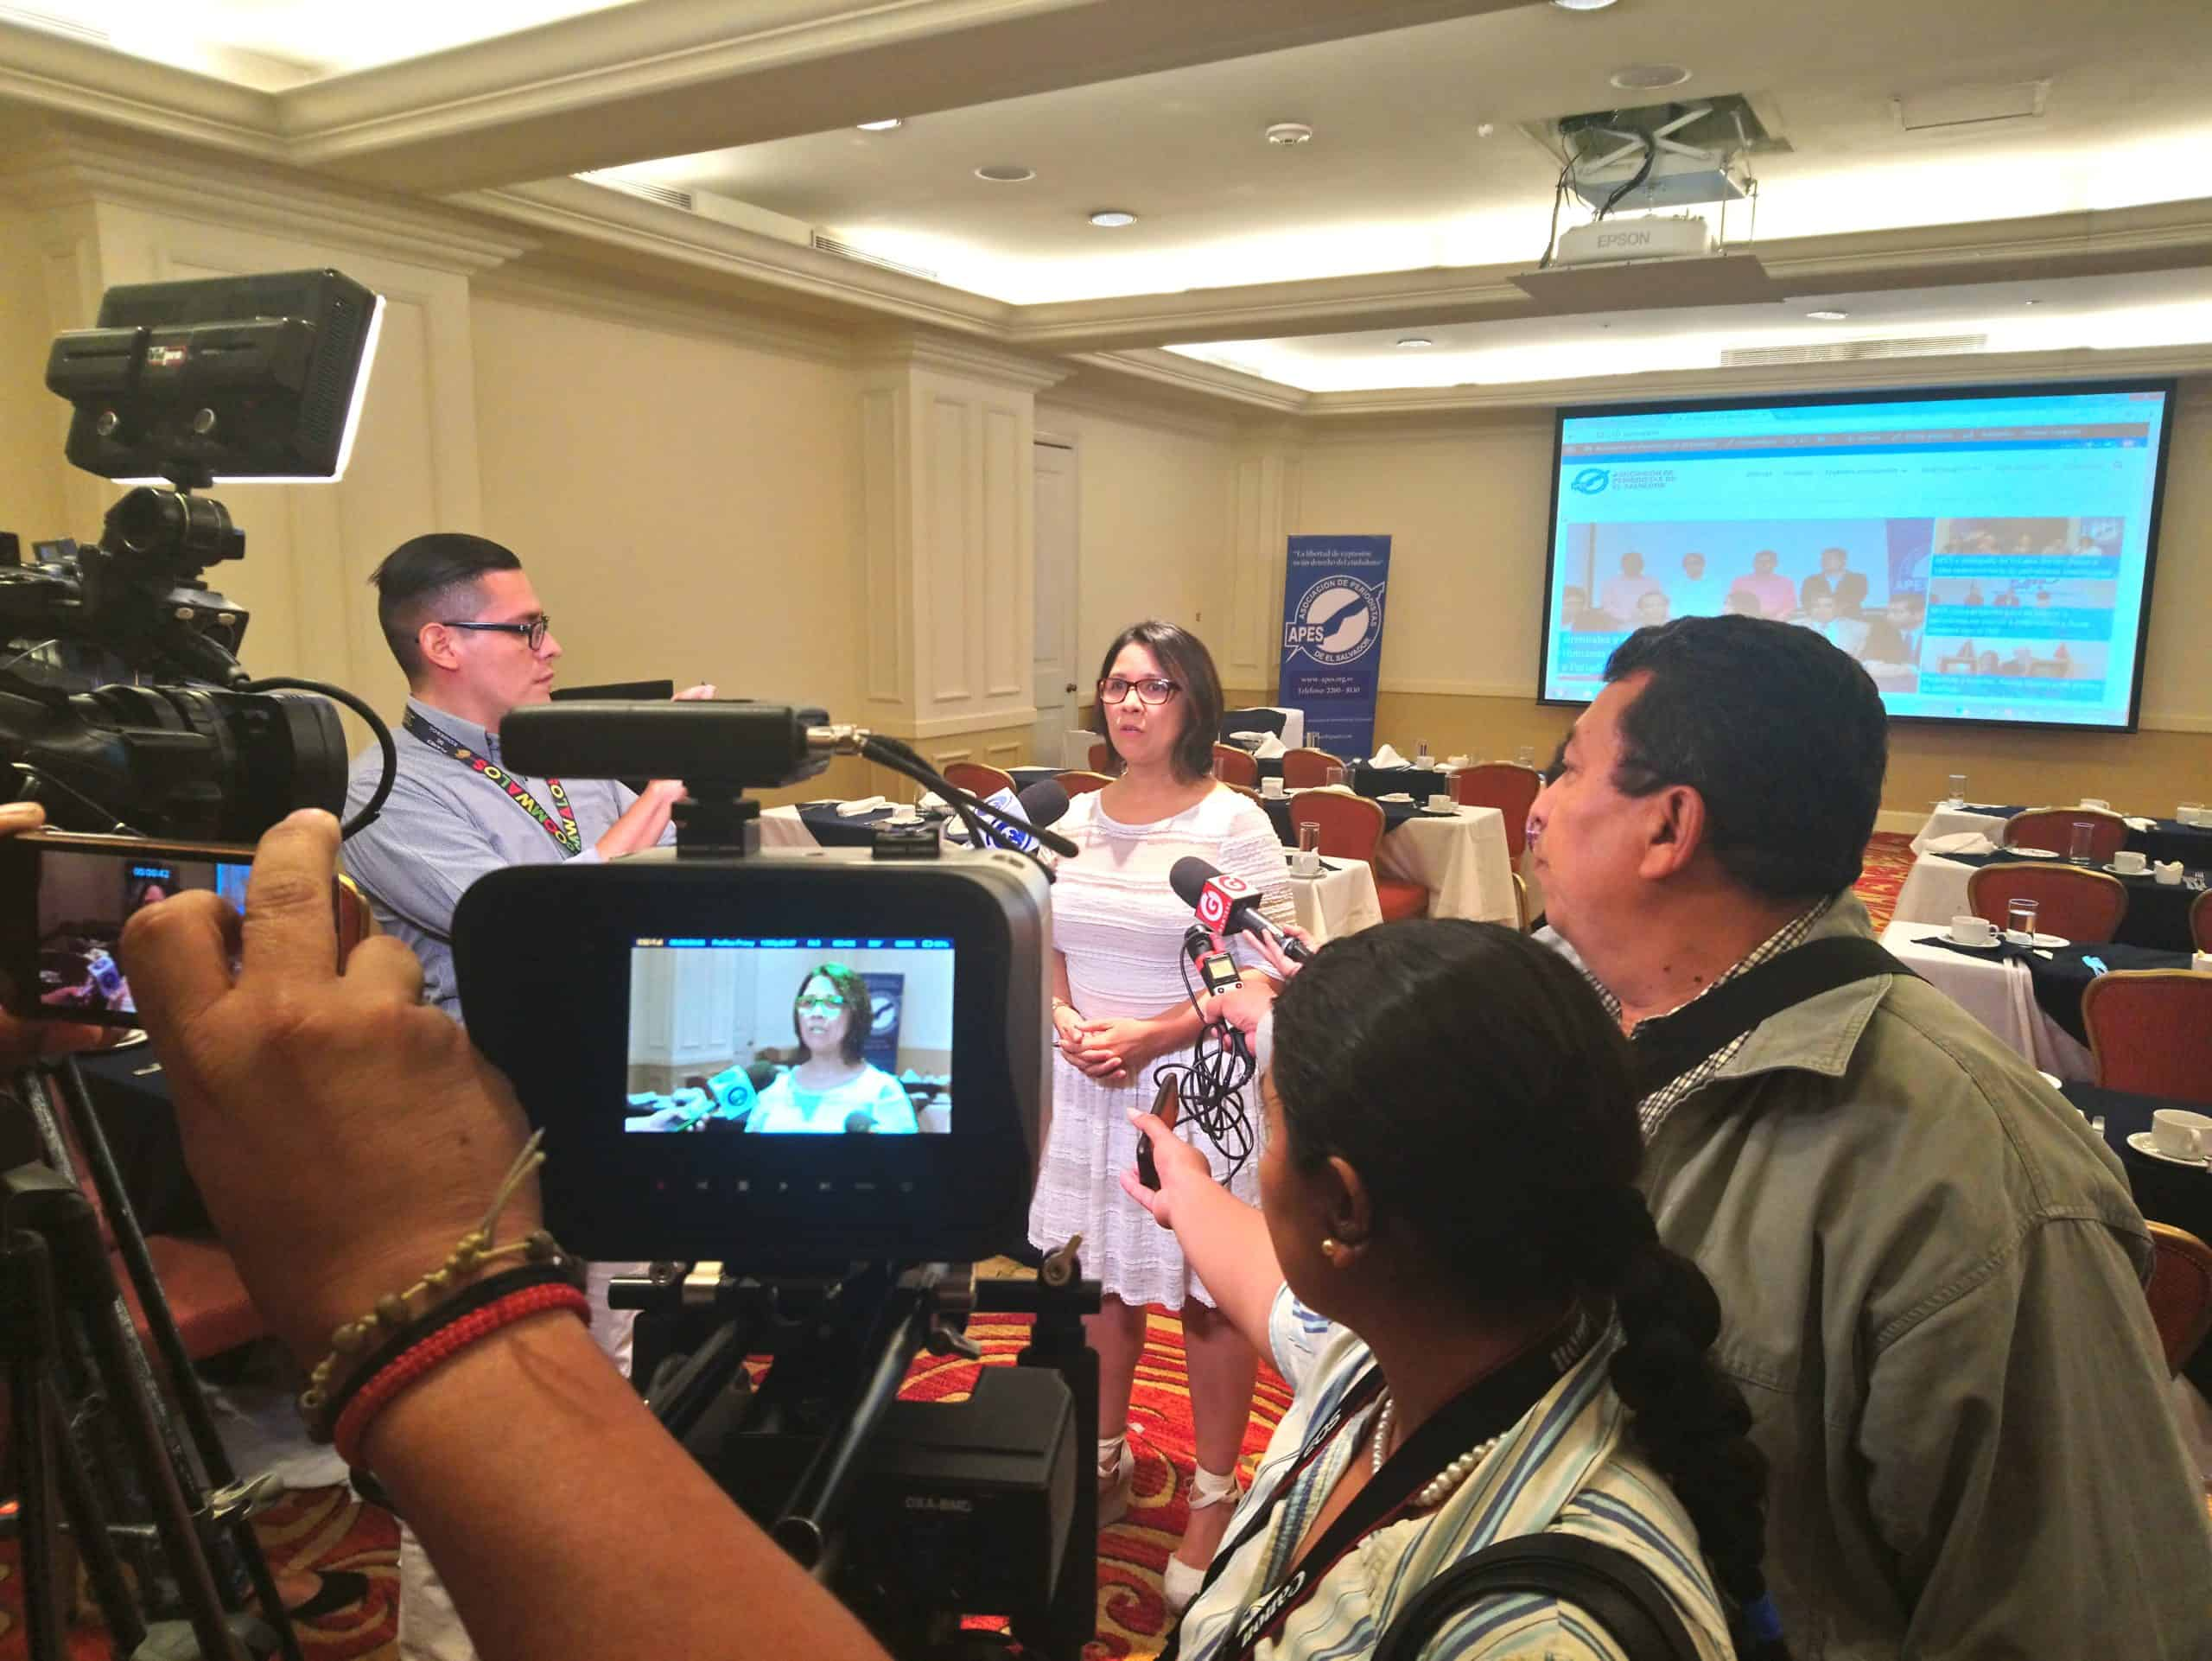 A group of journalists interviews a woman (Dalila Arriaza) using video cameras and microphones.